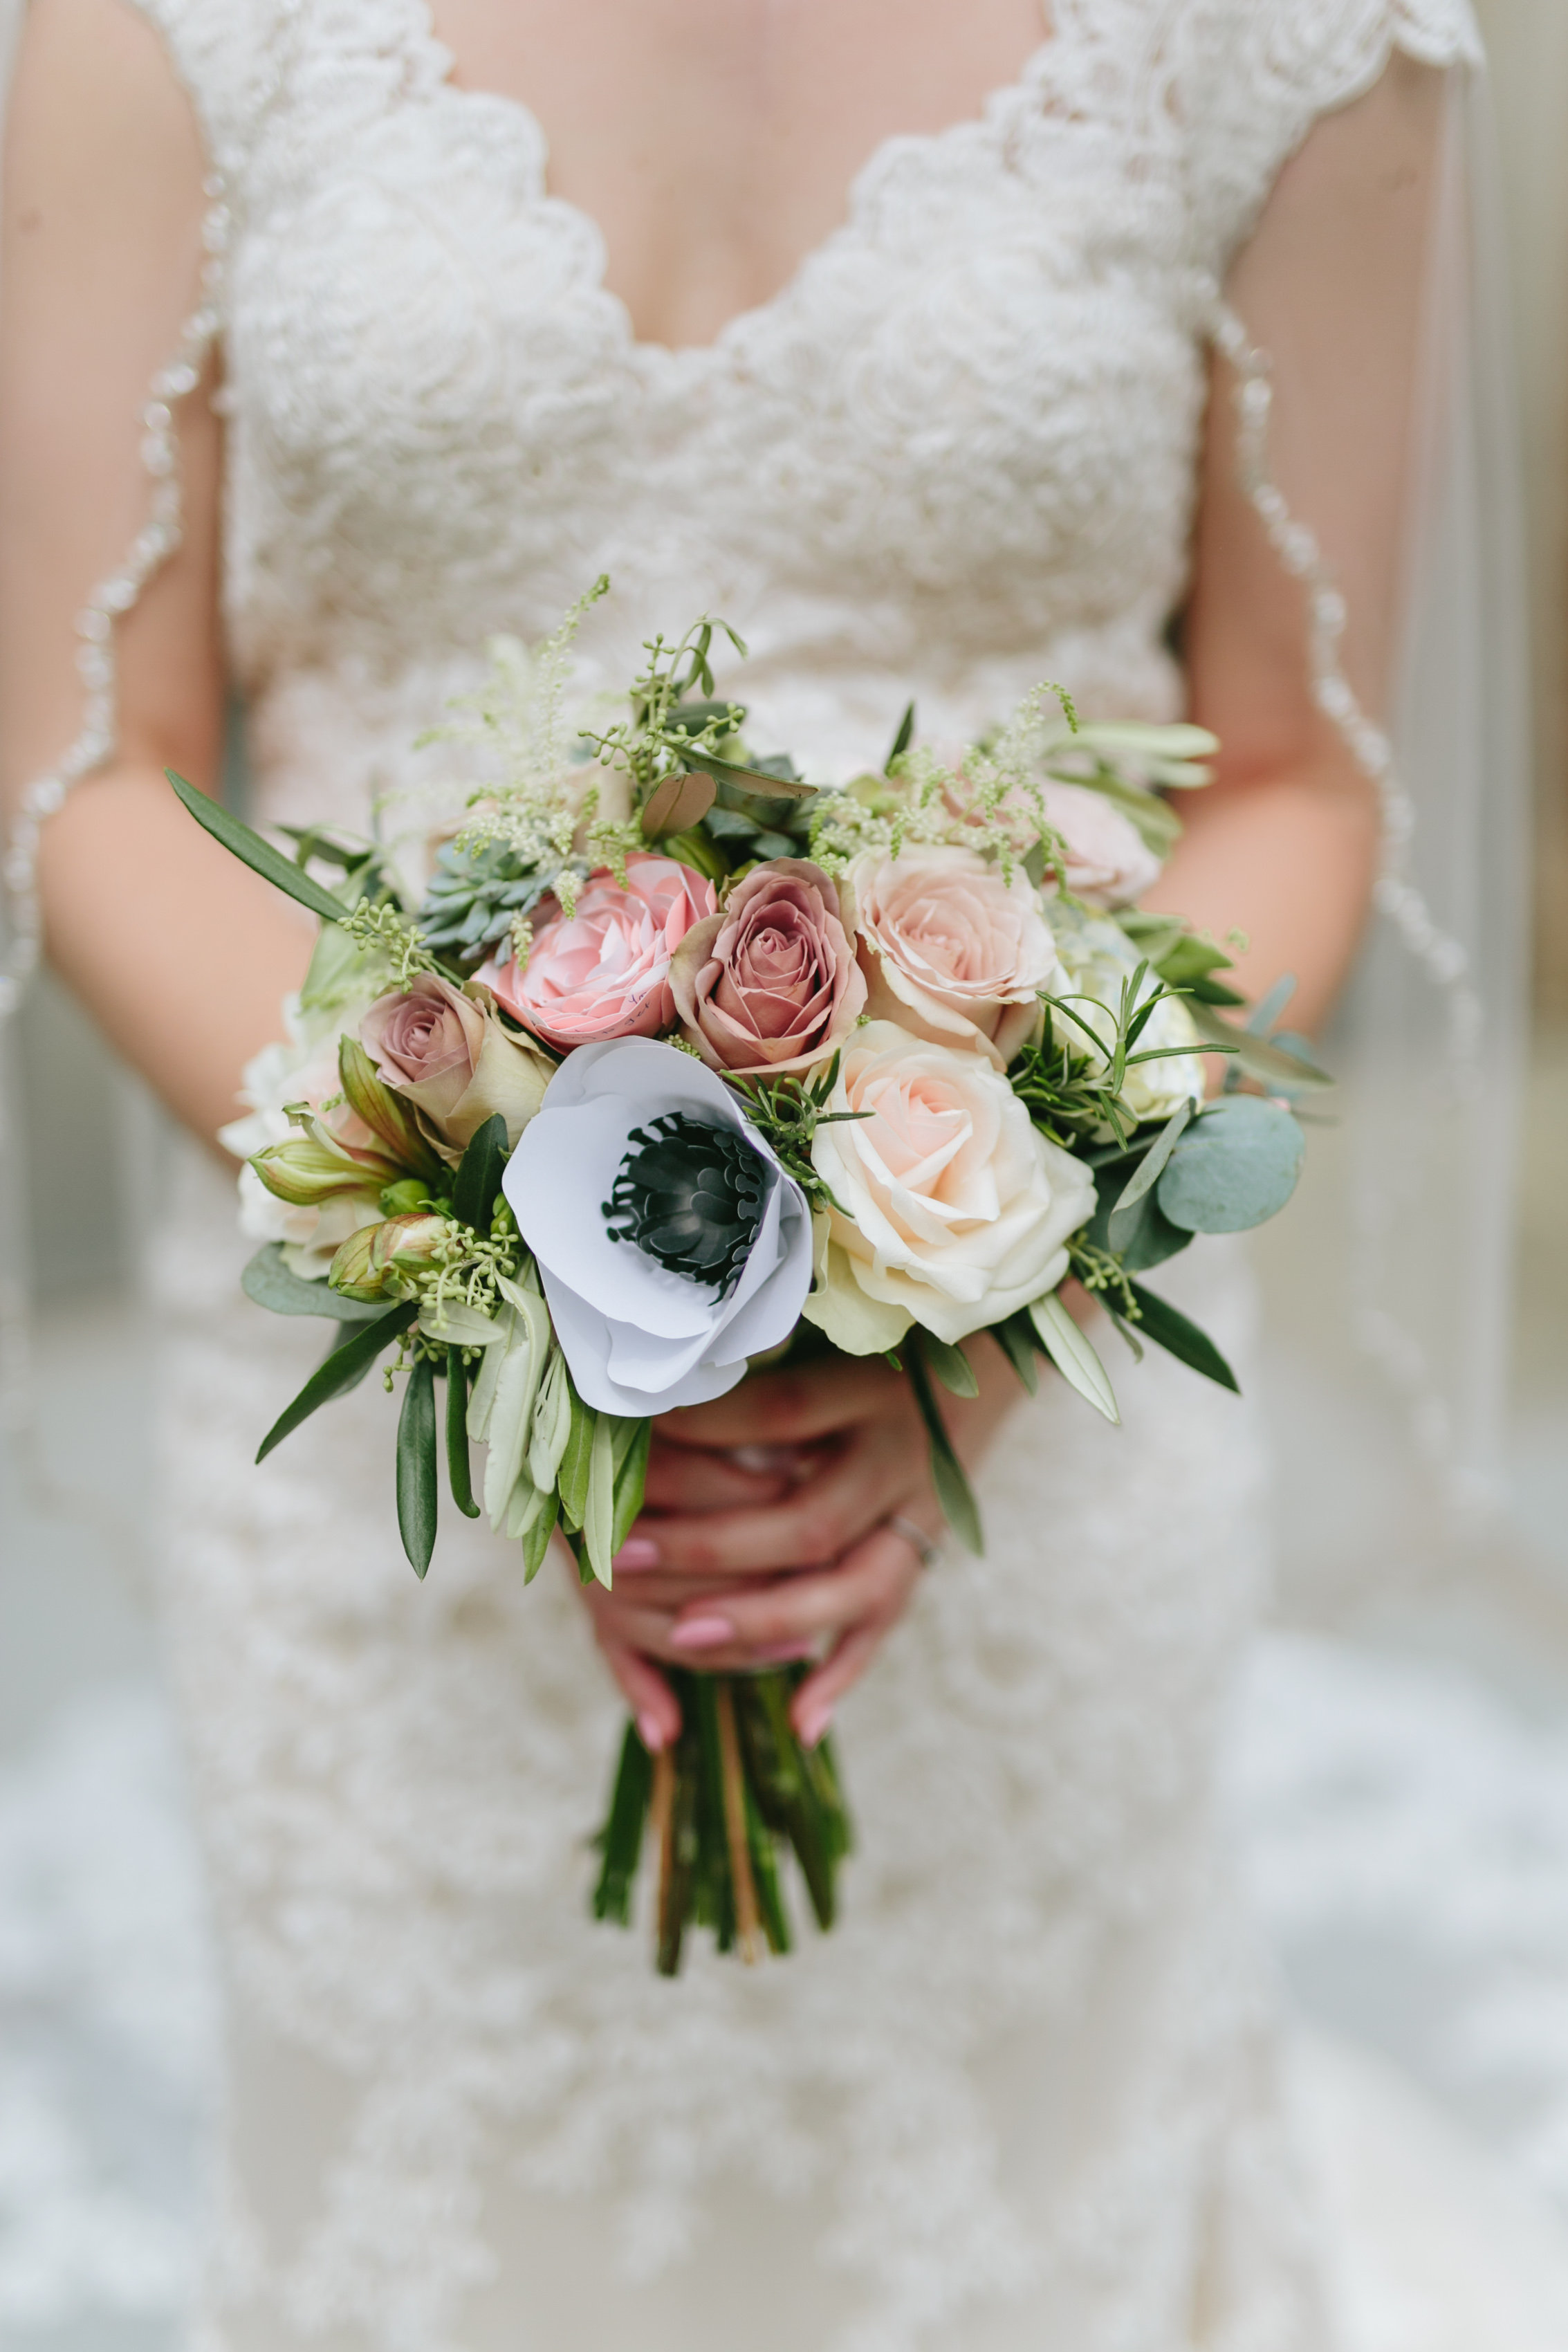 The Best Little Details from Our Wedding - How We Made Our Wedding Incredibly Personal - Crafting Wedding Flowers